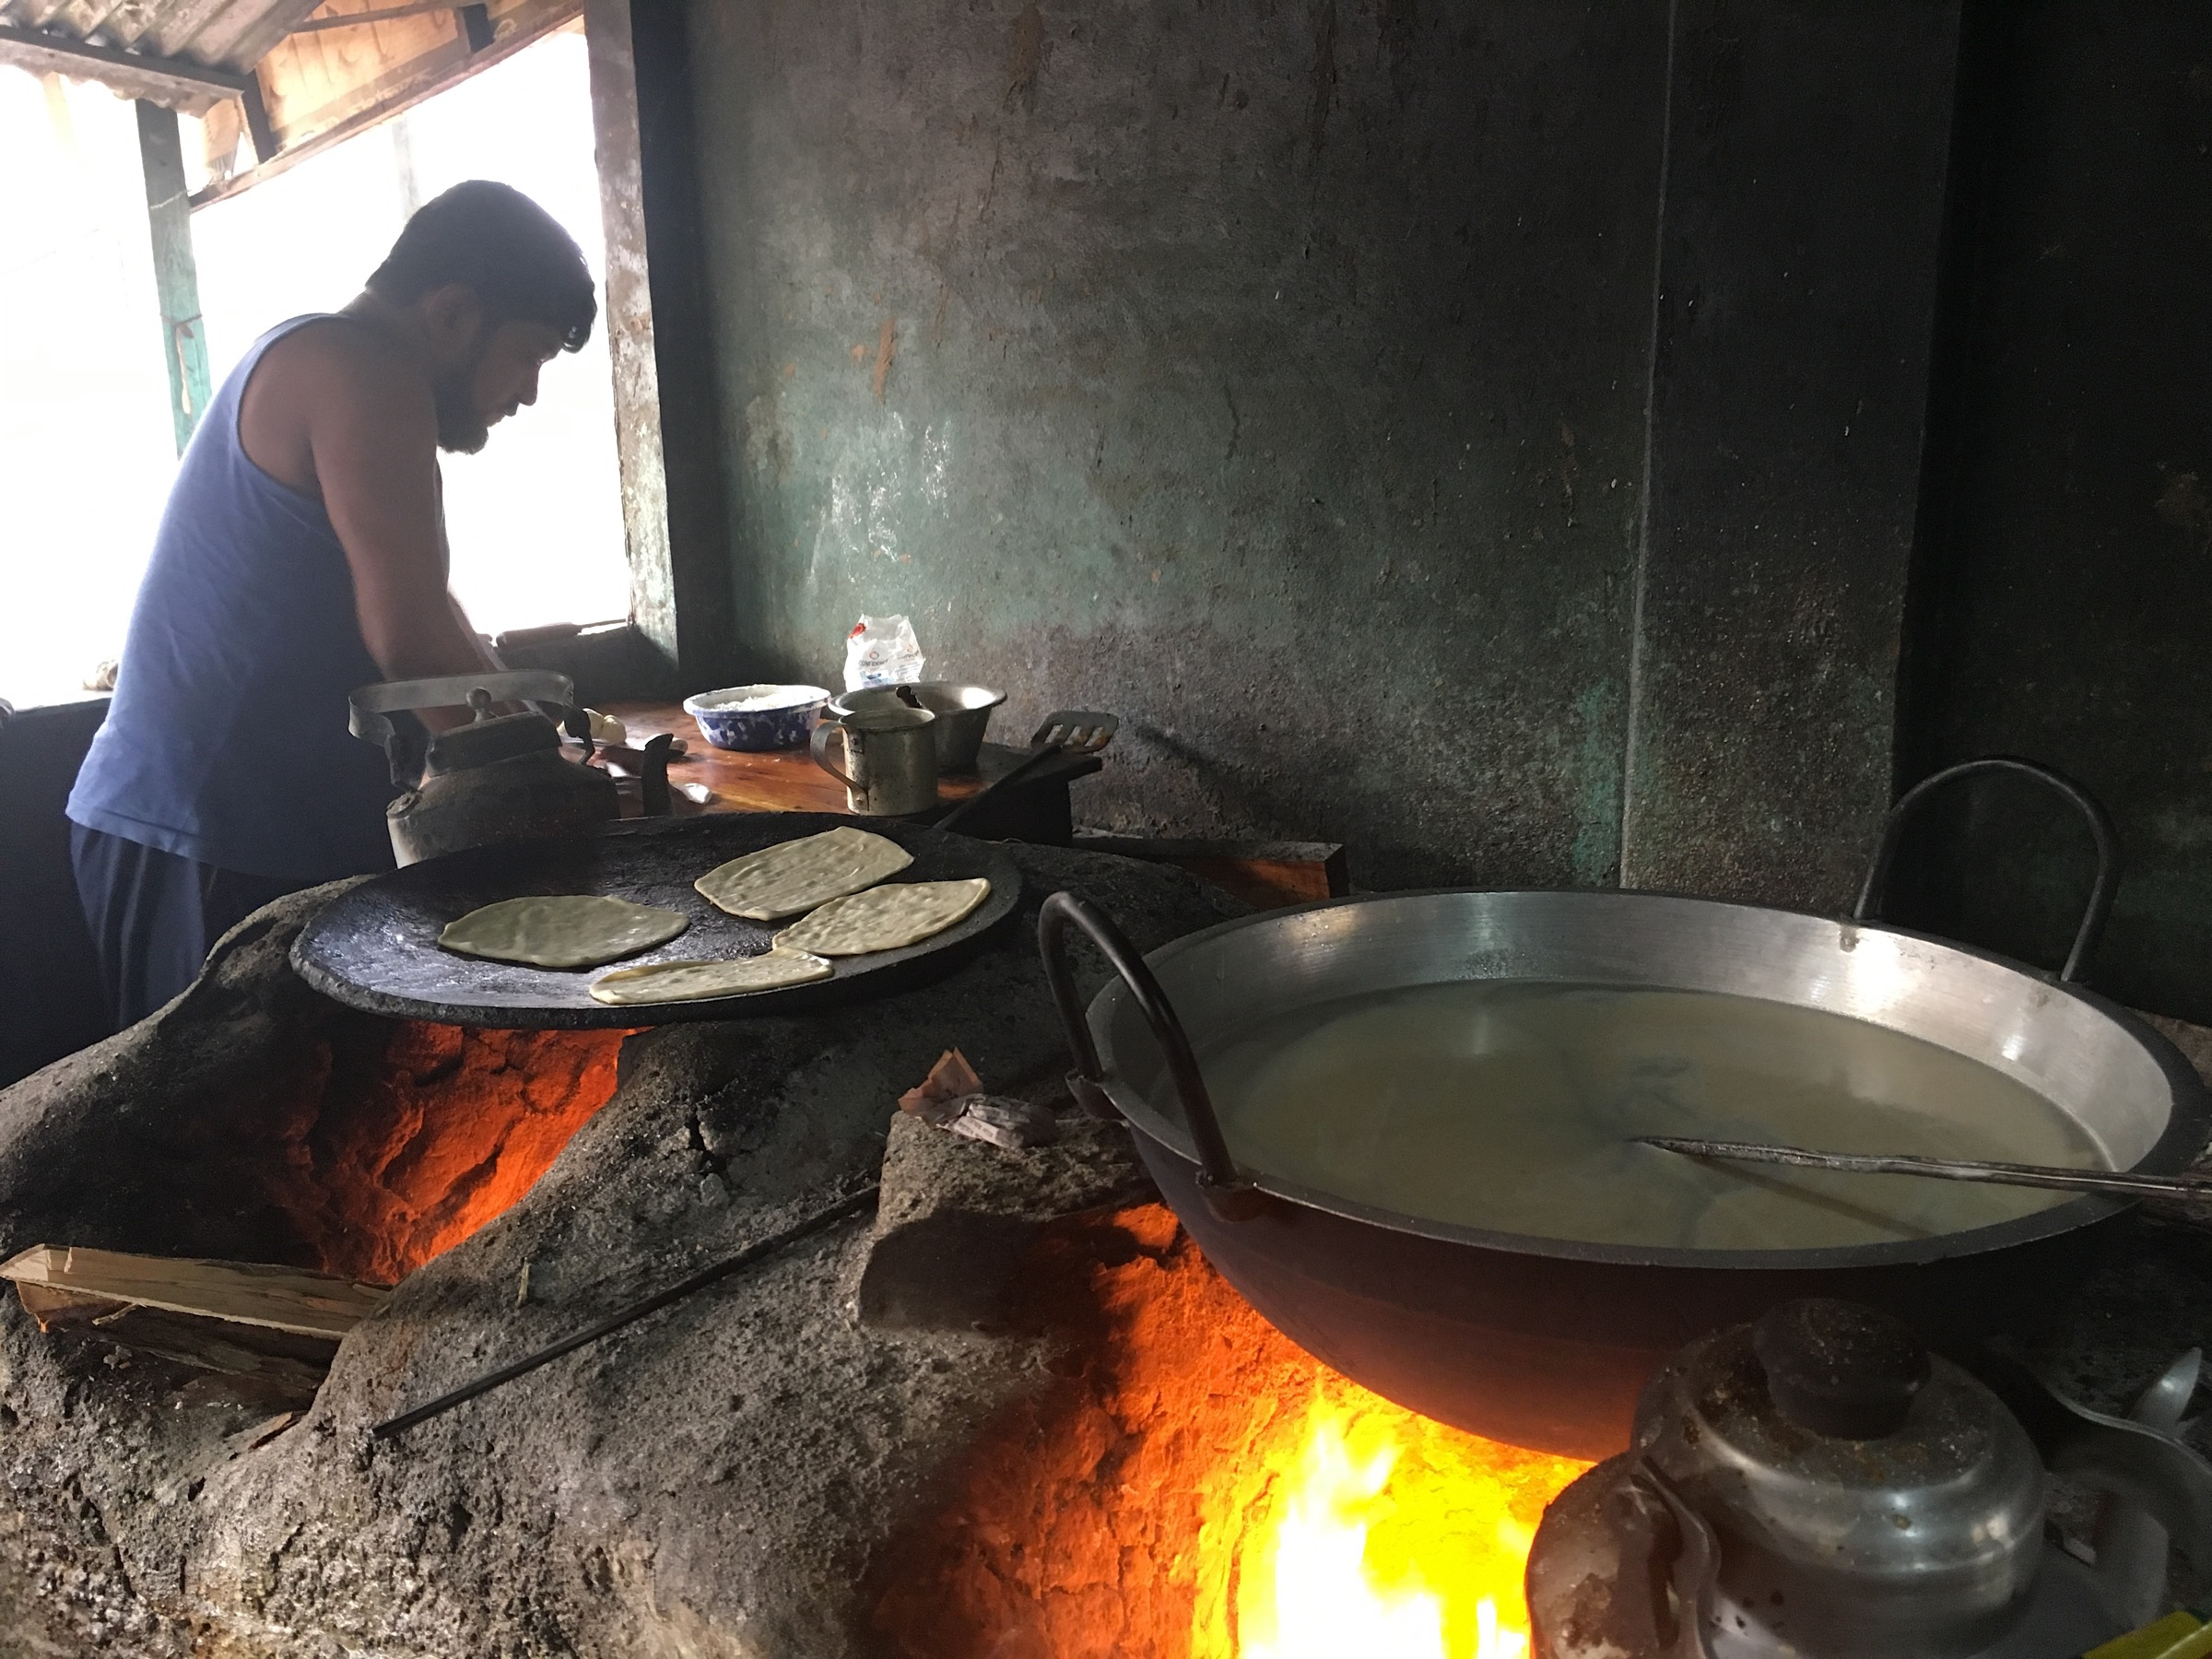 It's not hard to find a meal in Rangpur city. Nearly everywhere you look, vendors are cooking traditional meals over wood fires and propane stoves. Photograph by Steven Bedard